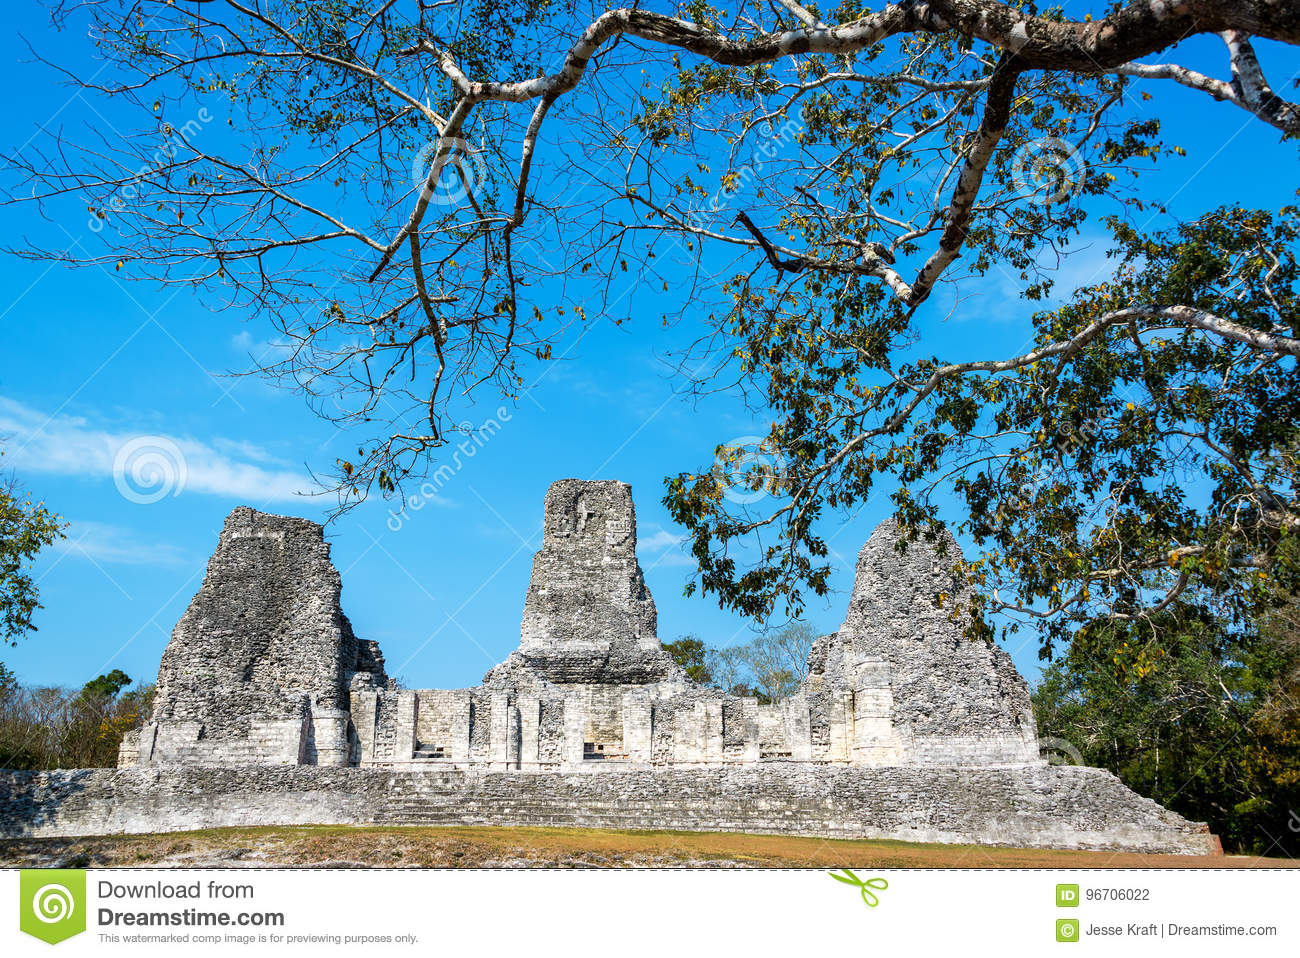 Ruins of Xpujil, Mexico